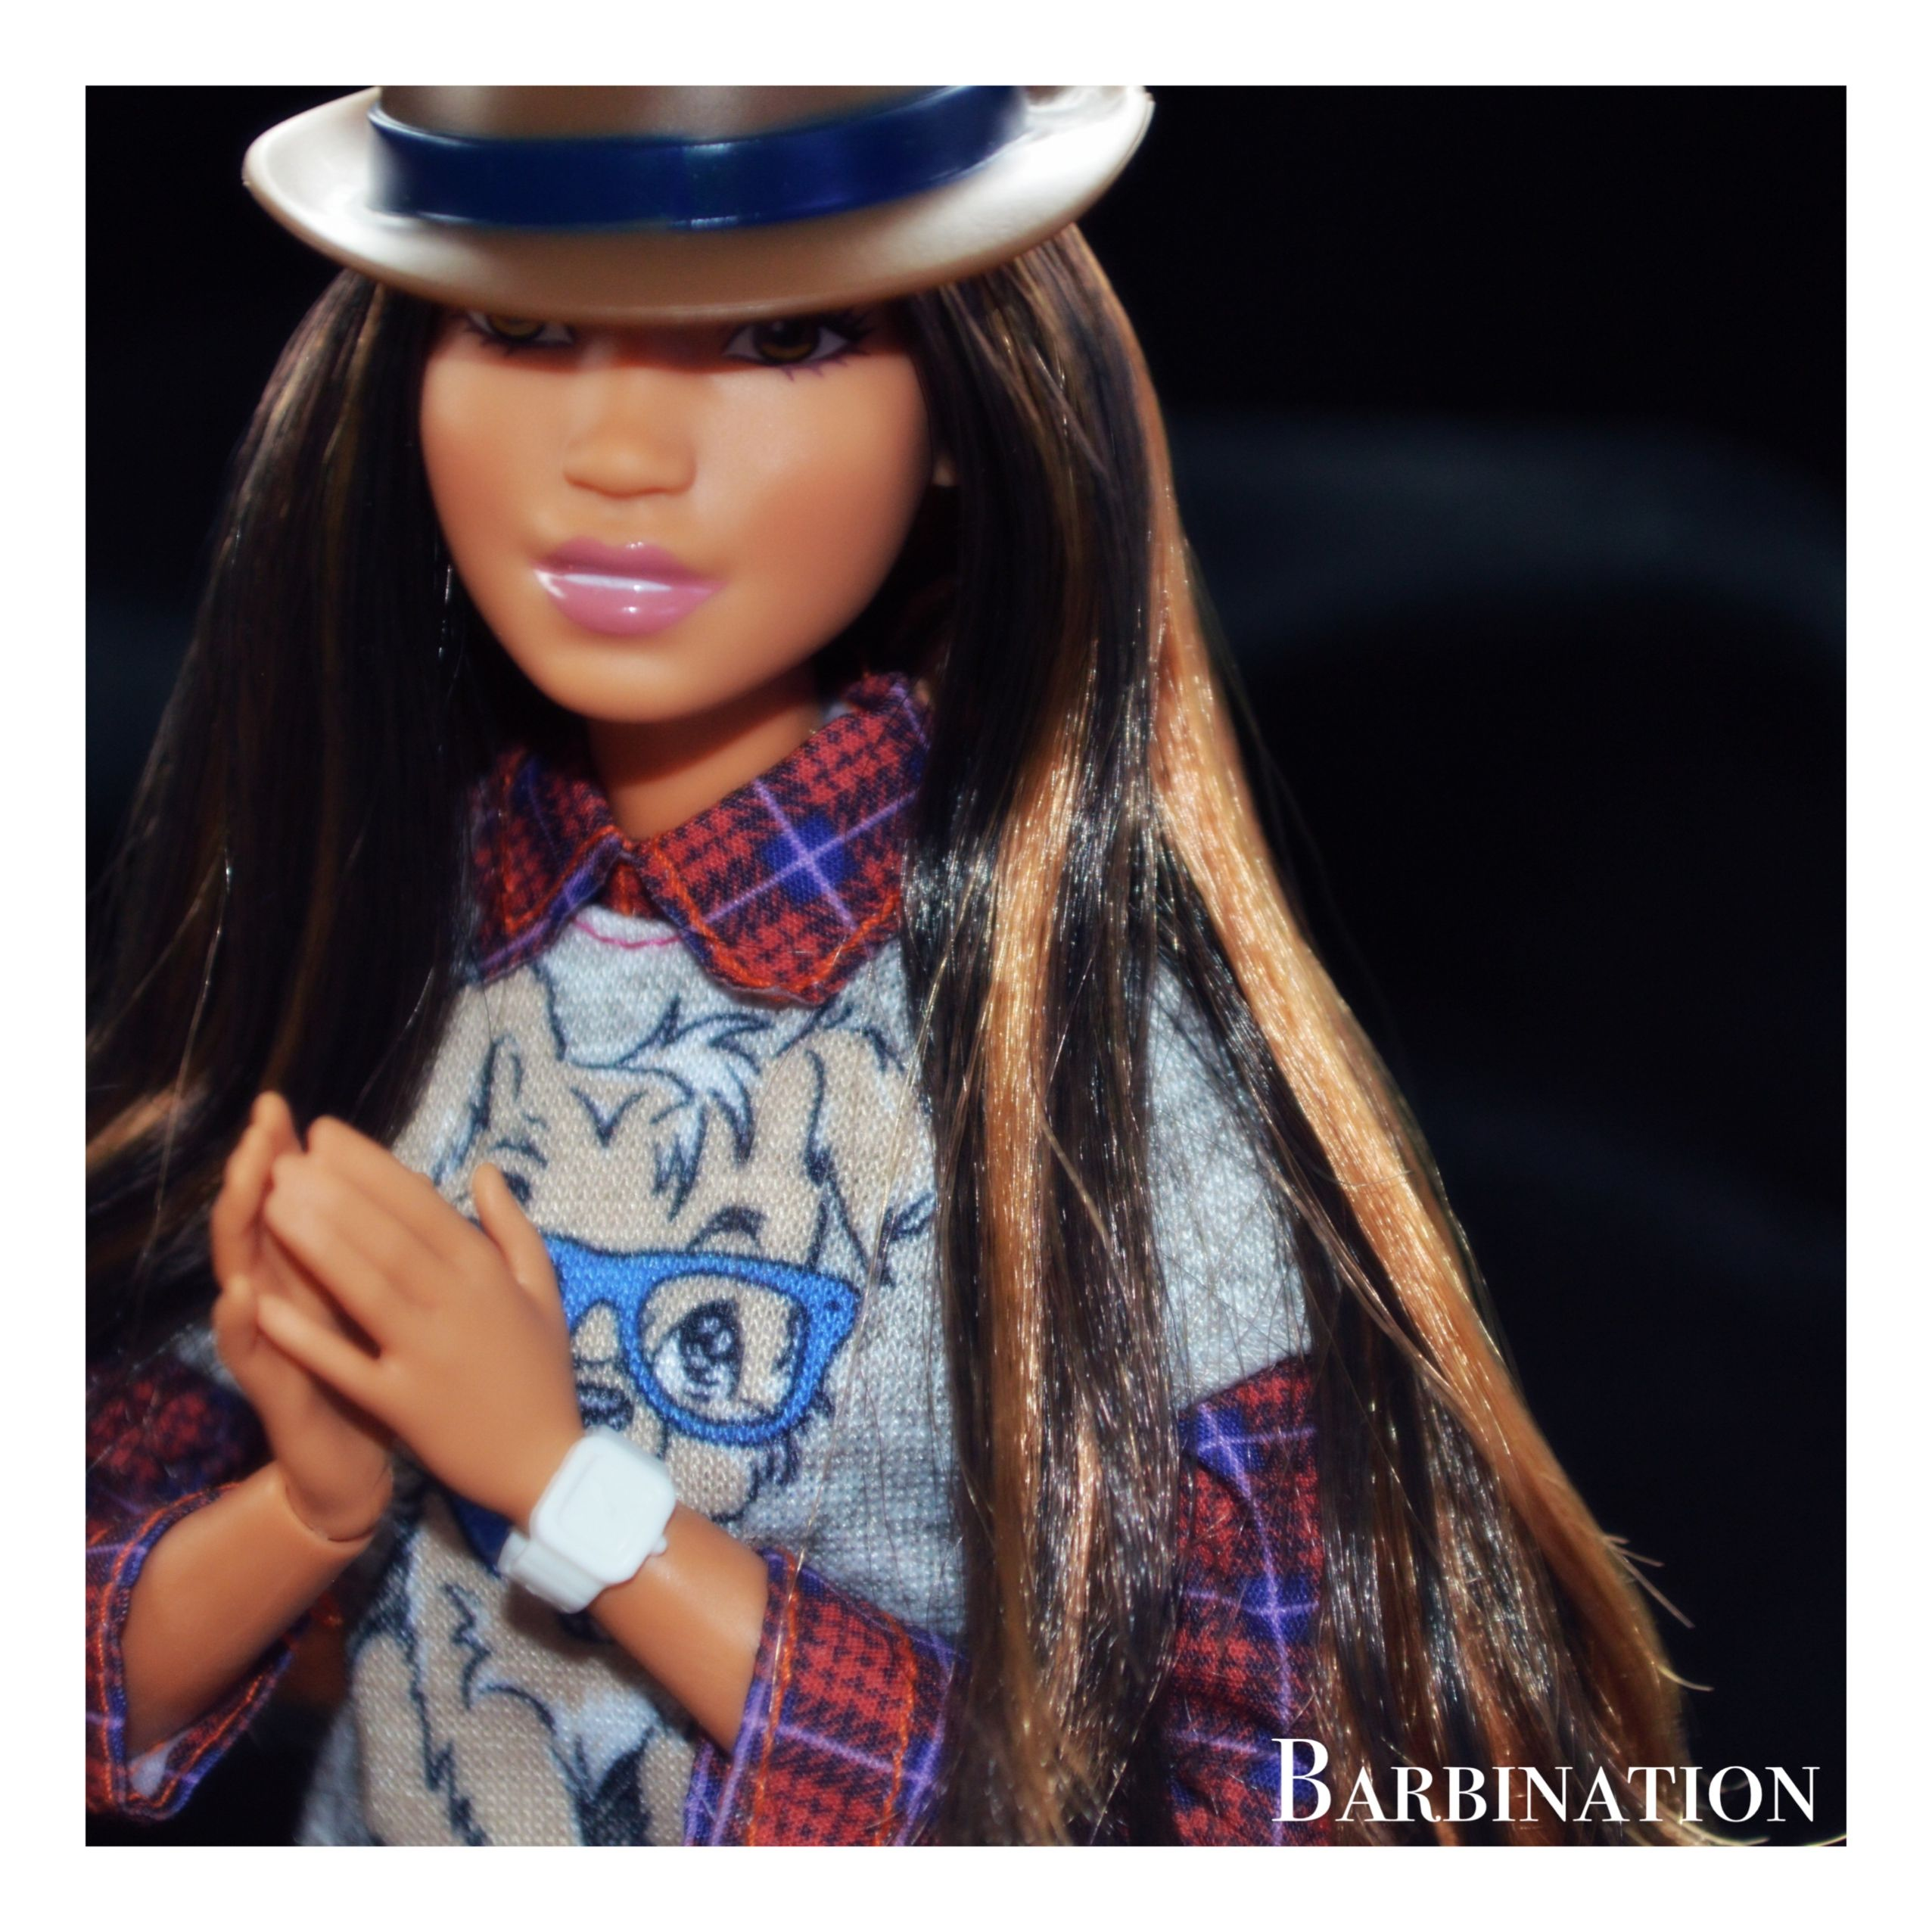 Hipster Style Barbie Barbiedoll Barbination Hipster